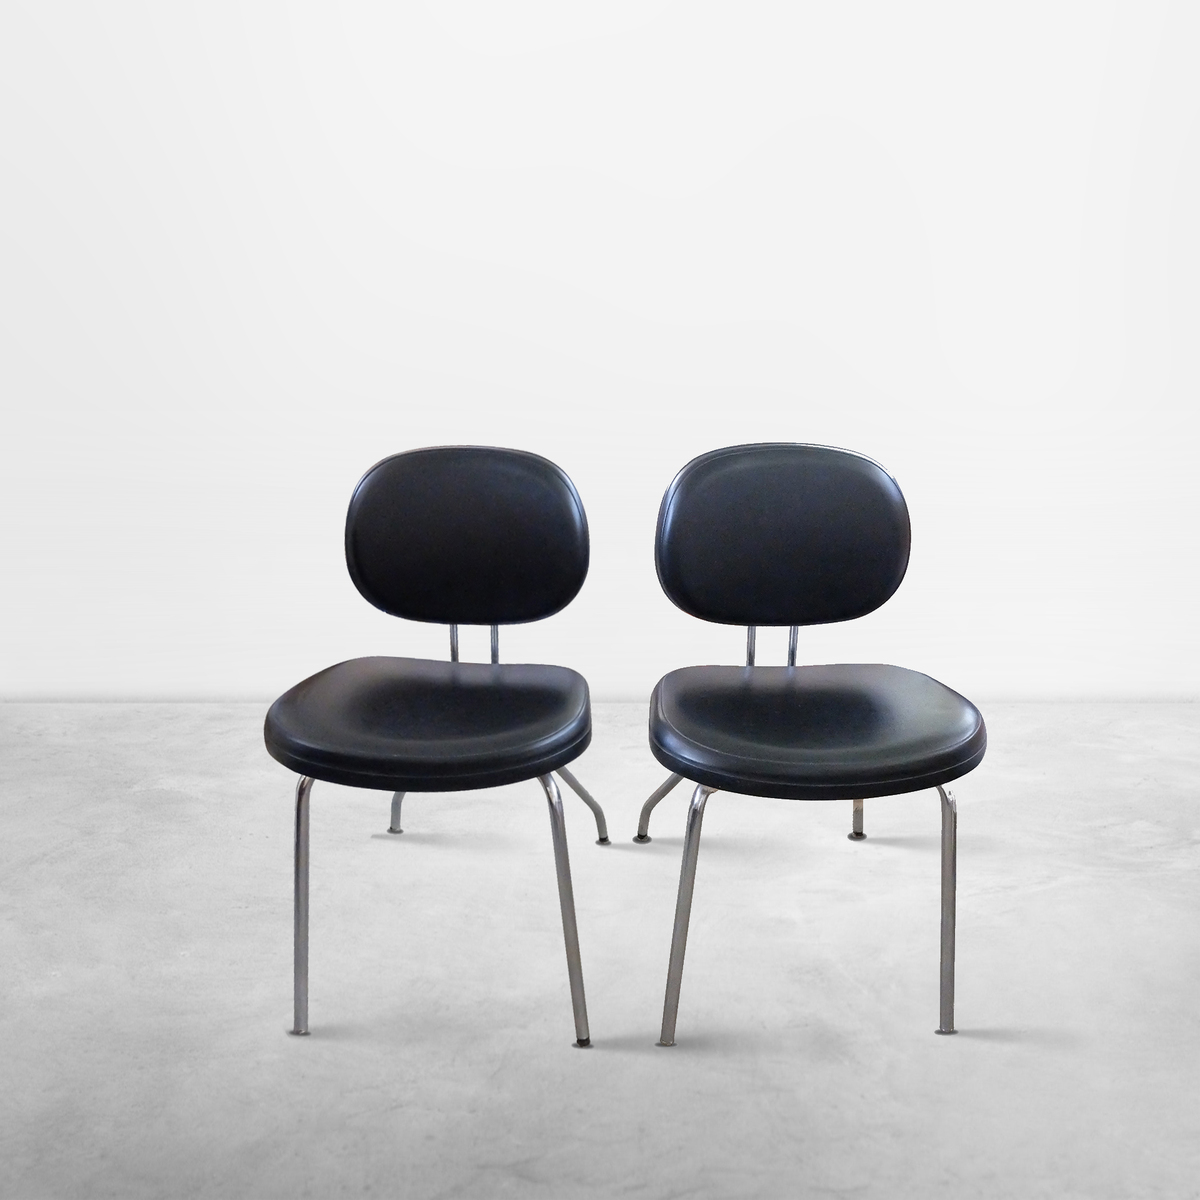 Set of 2 Black Leather office chairs for MIM Italia, 1965